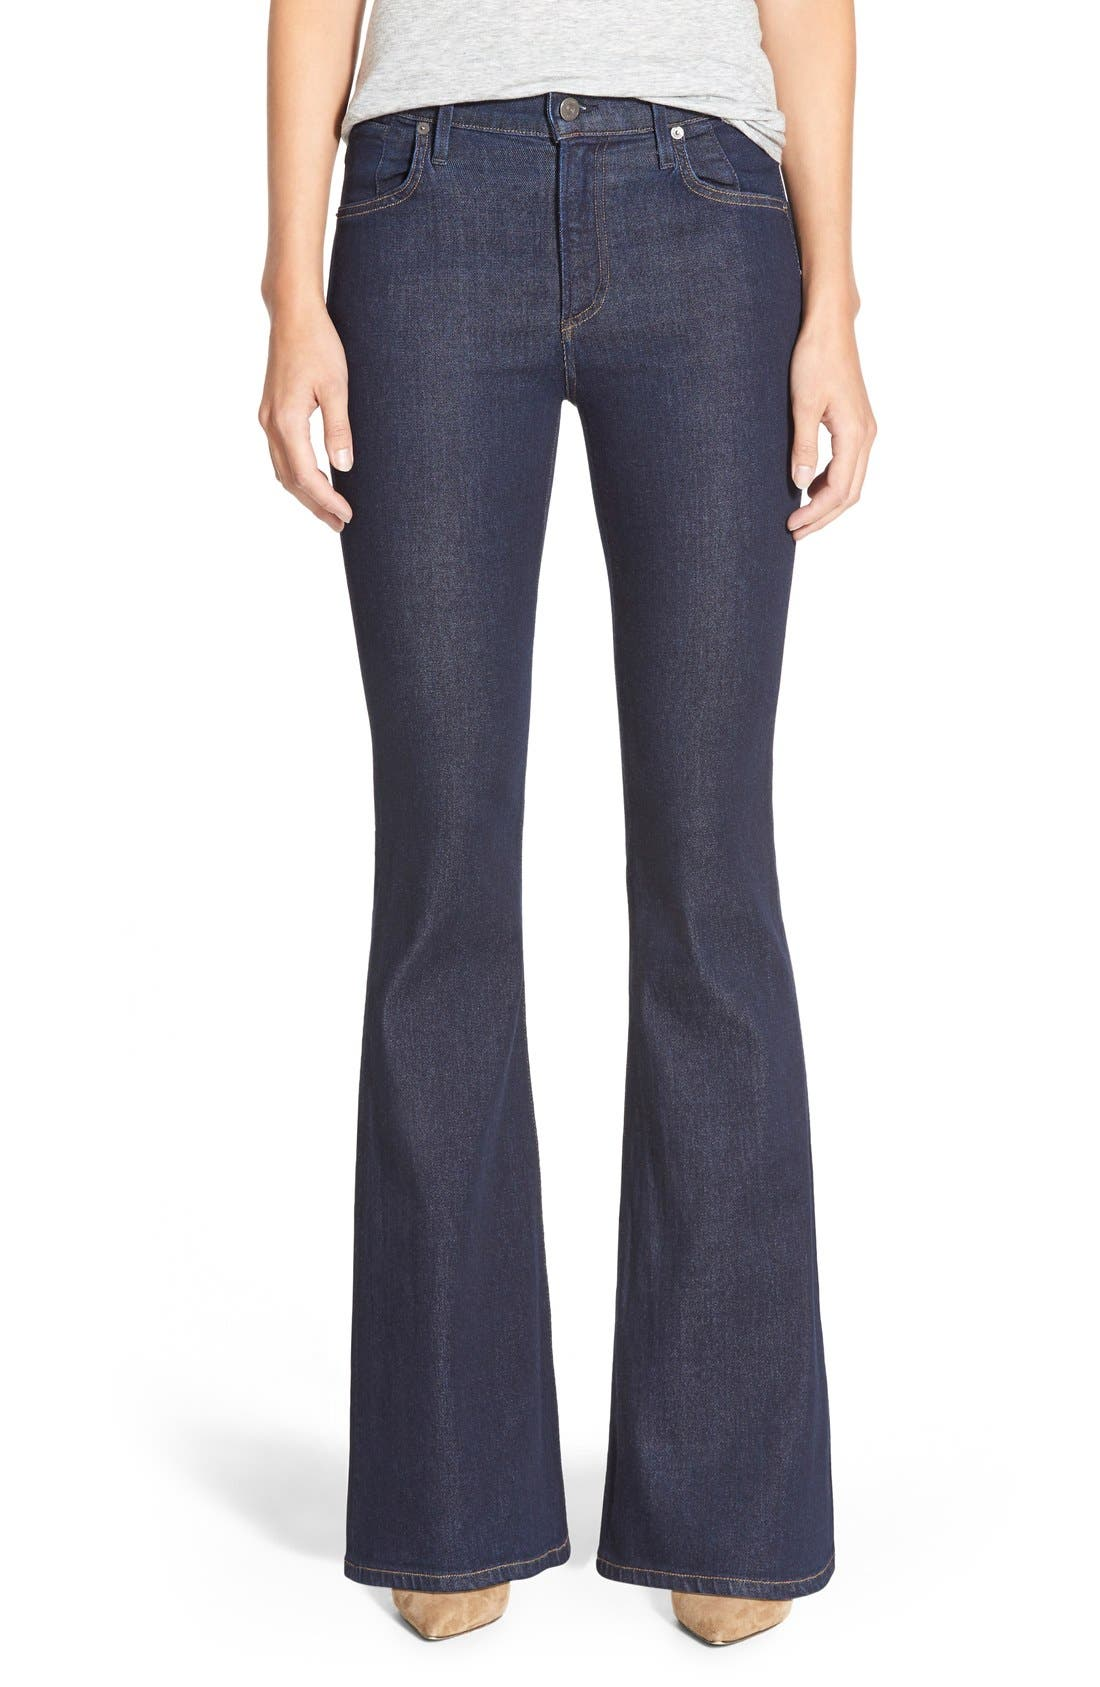 'Fleetwood' High Rise Flare Jeans,                         Main,                         color, Ozone Rinse